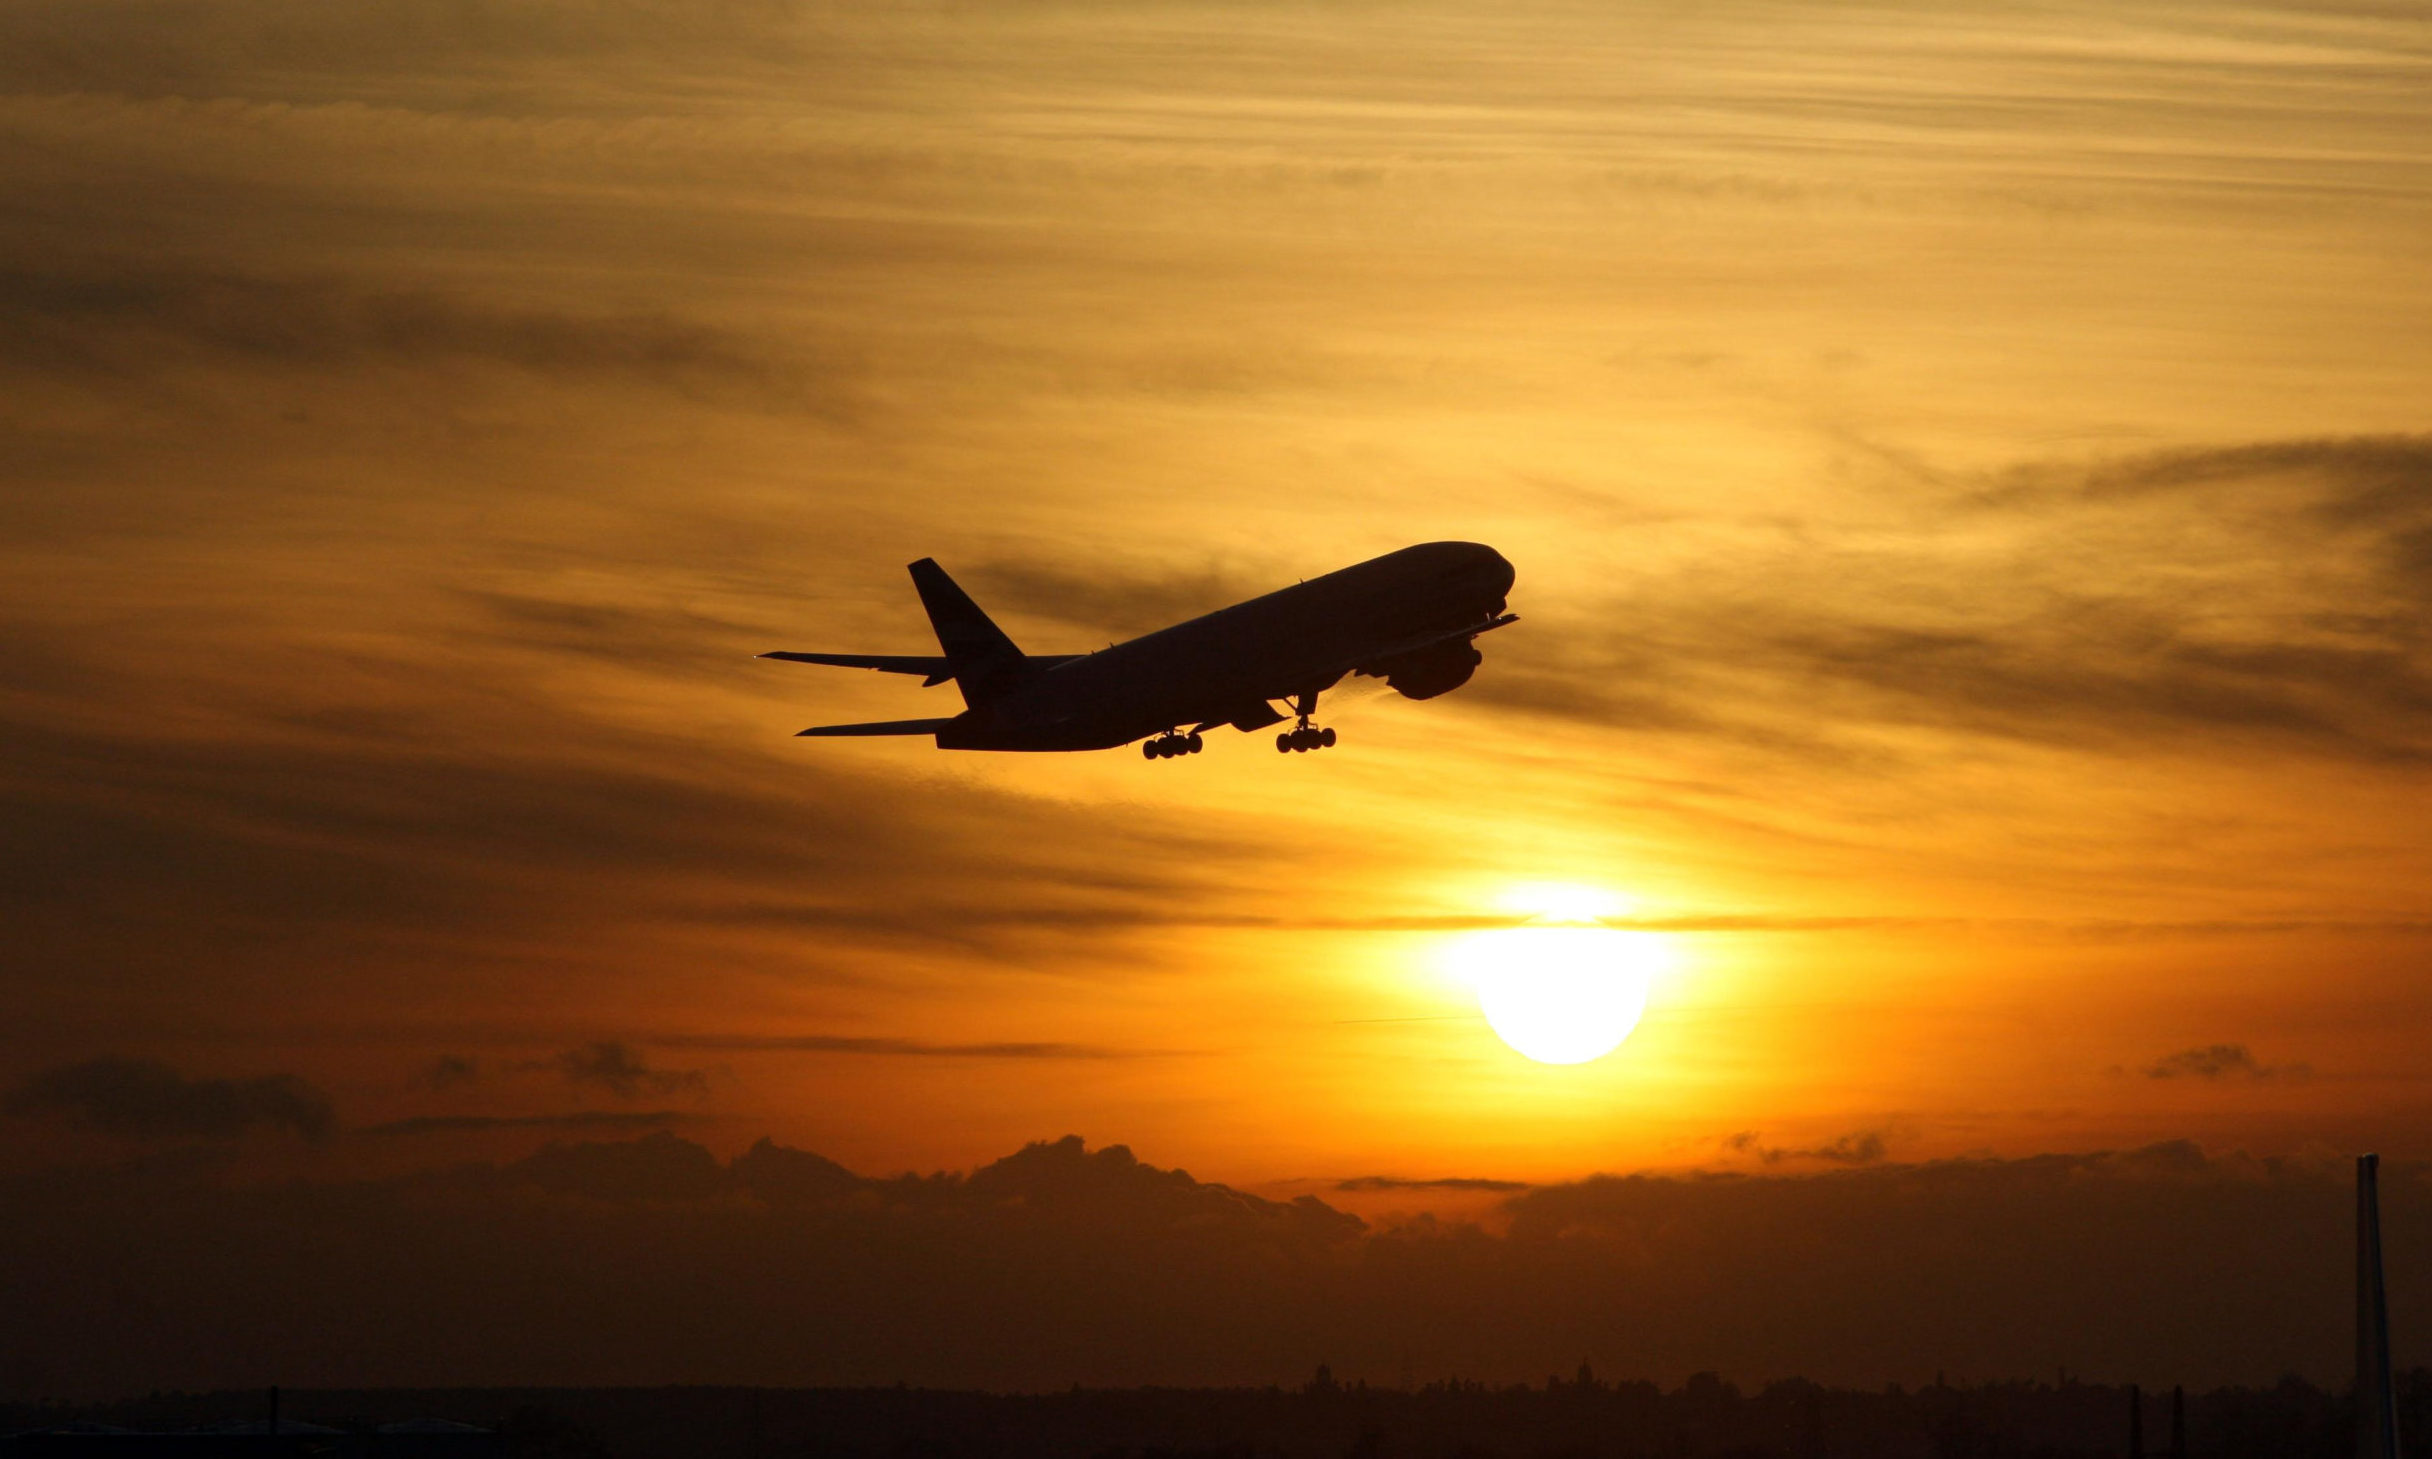 A plane taking off from Heathrow Airport at sunse.